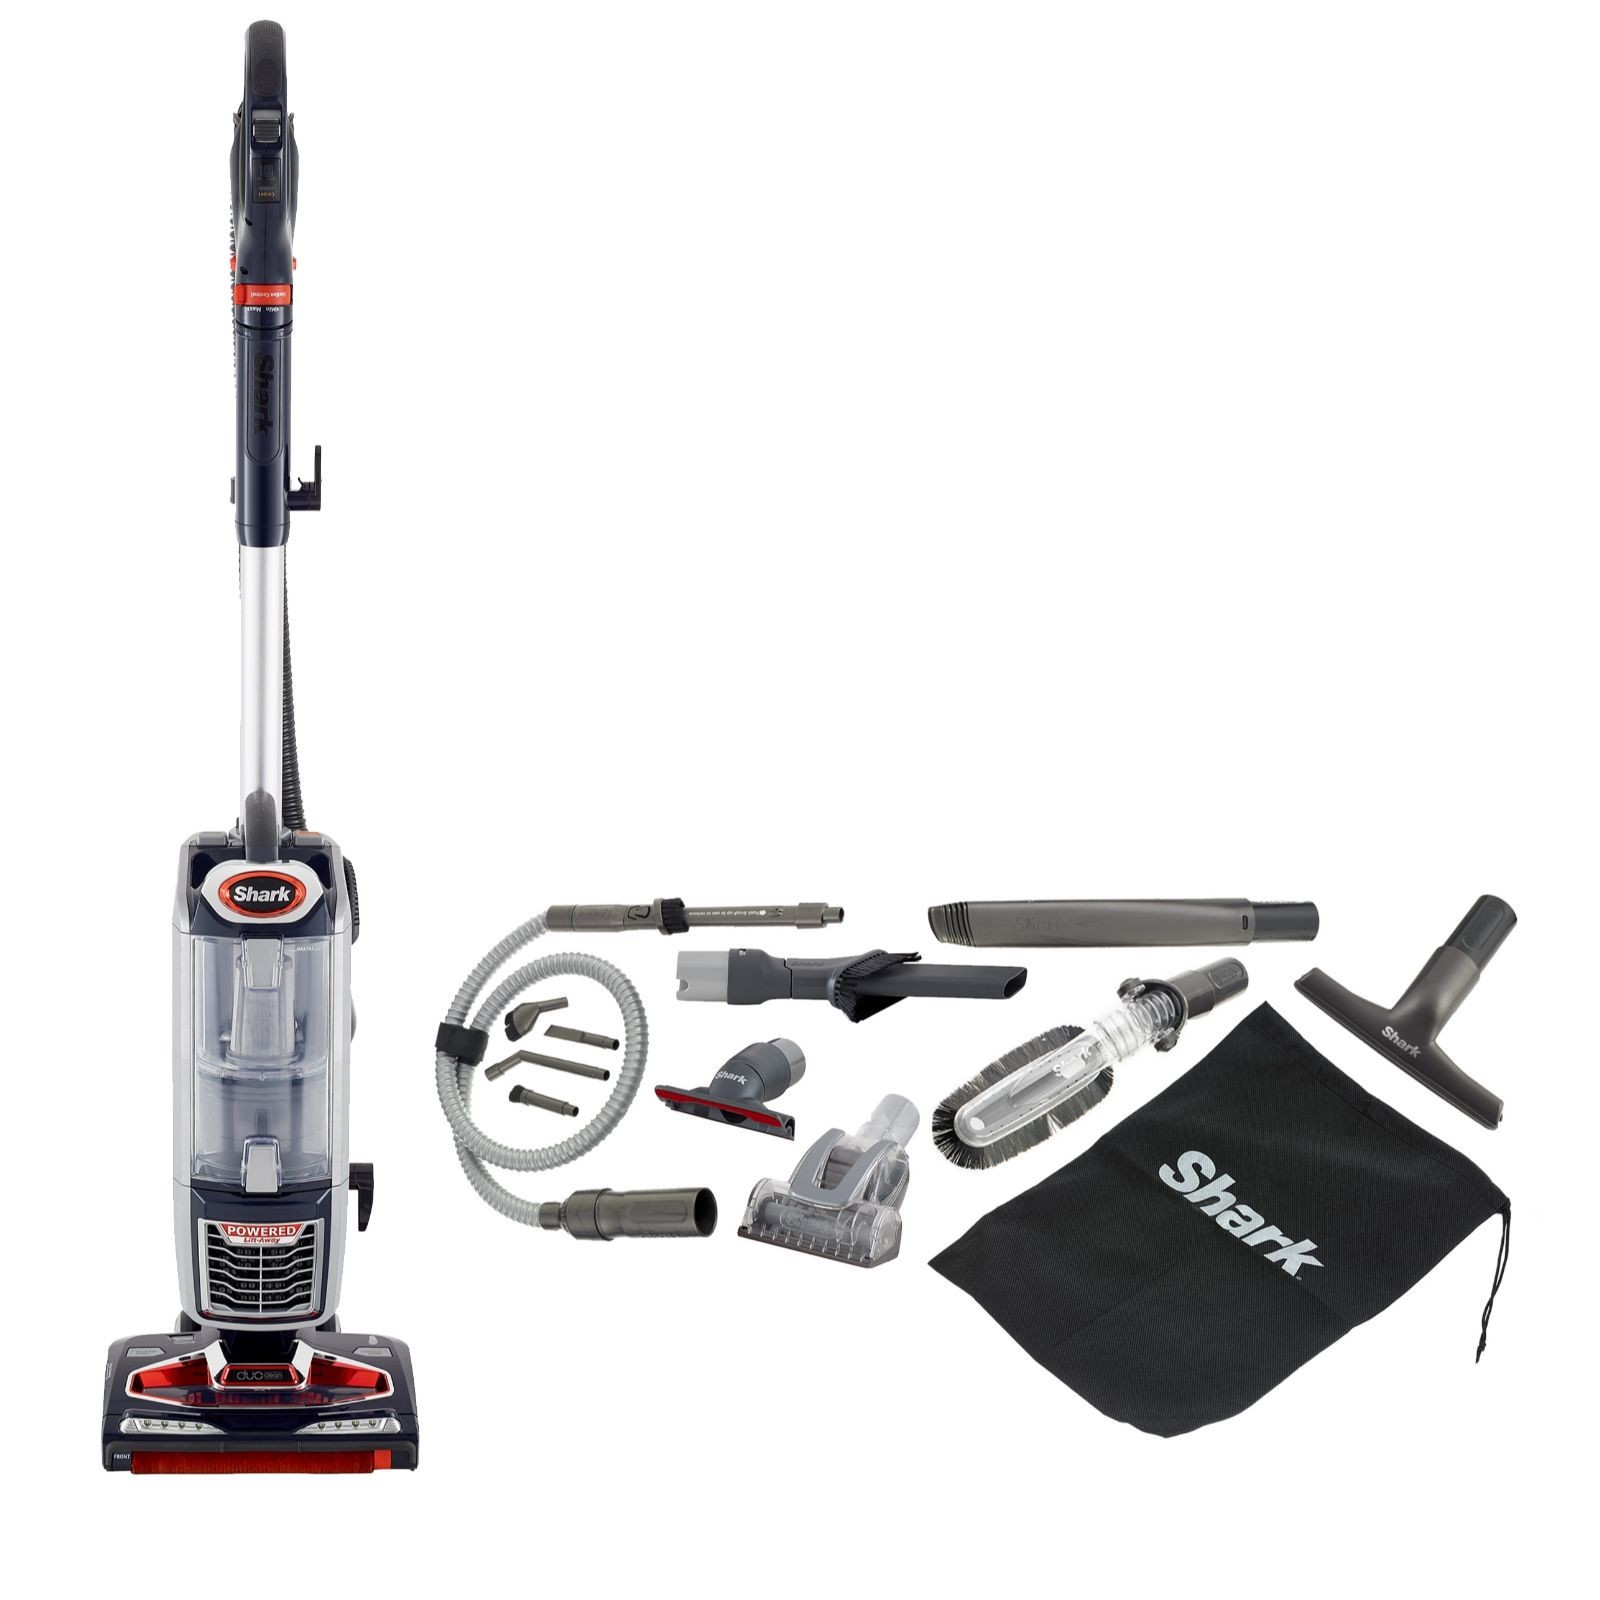 hardwood floor cleaning machine reviews of 17 unique shark hardwood floor cleaner photograph dizpos com with regard to shark hardwood floor cleaner best of shark duoclean powered lift away true pet vacuum cleaner with